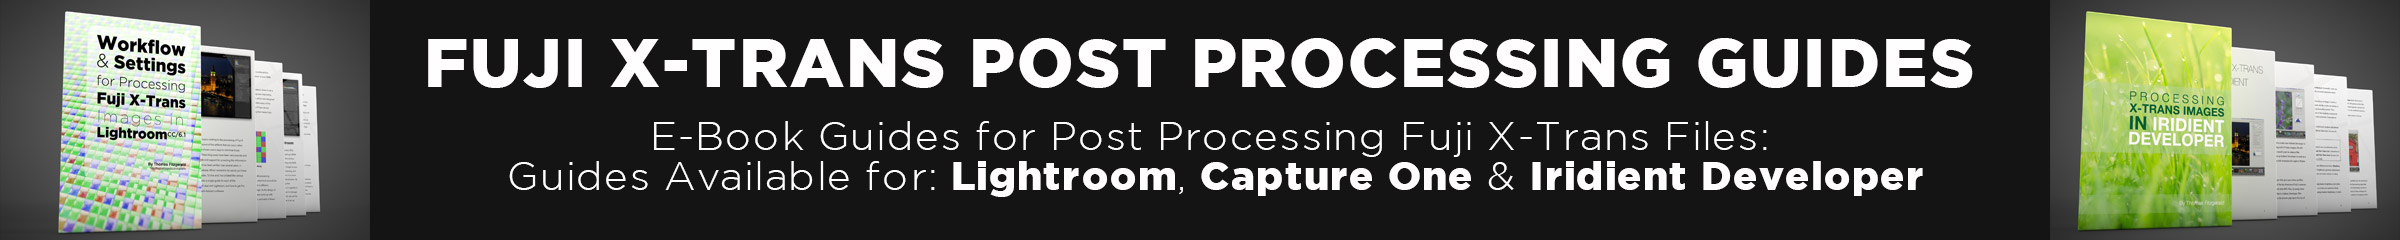 Post processing Fuji X-Trans Files in Lightroom and Capture One - E-Book Guides